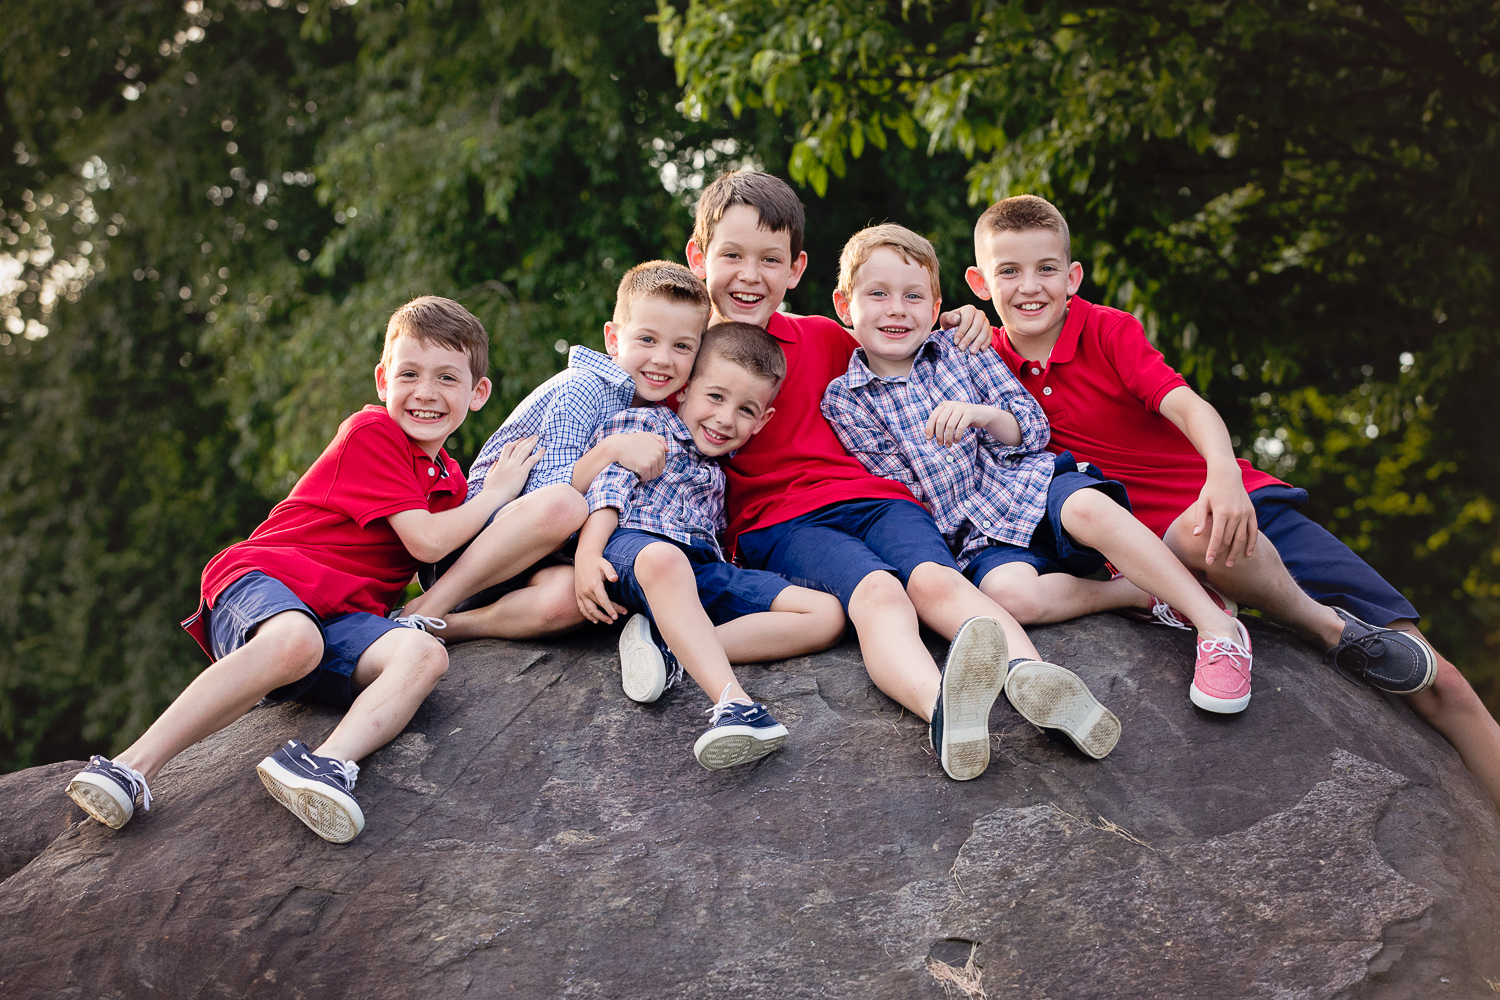 6 cousins, all boys, red and blue color scheme